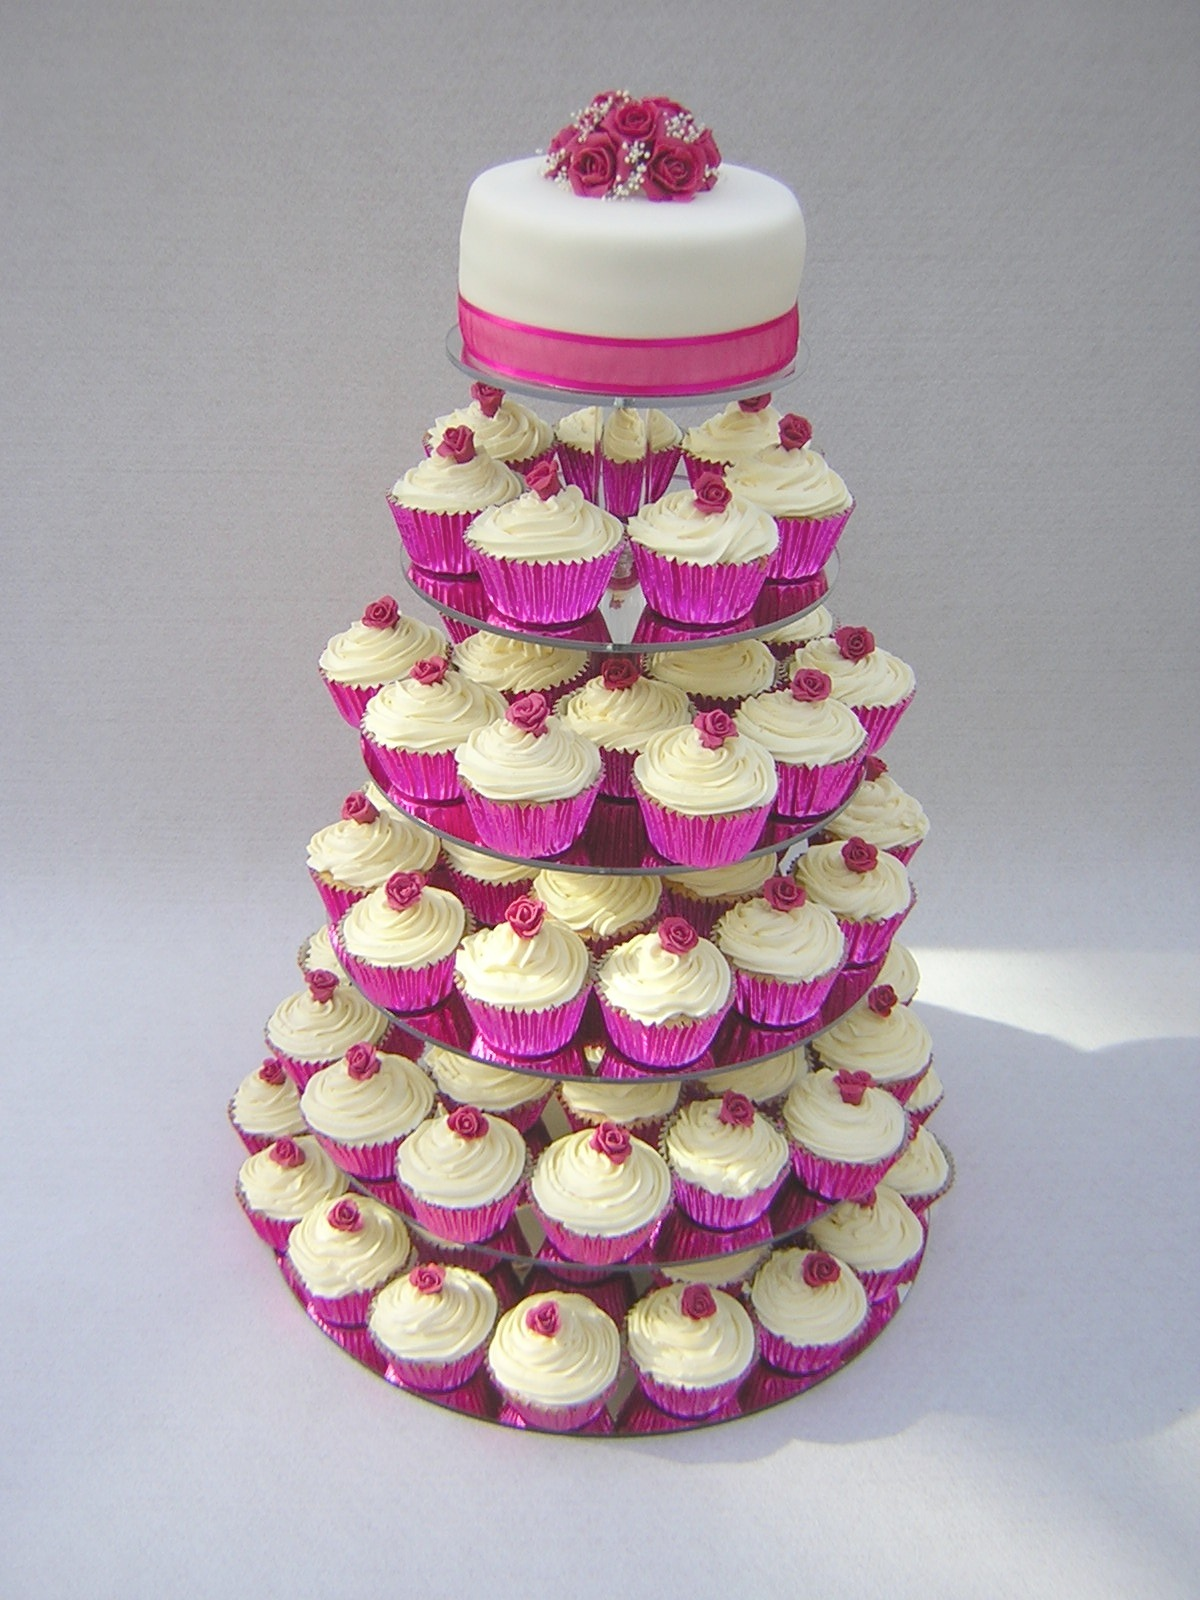 Wedding cupcakes large gallery for inspiration pictures to pin on